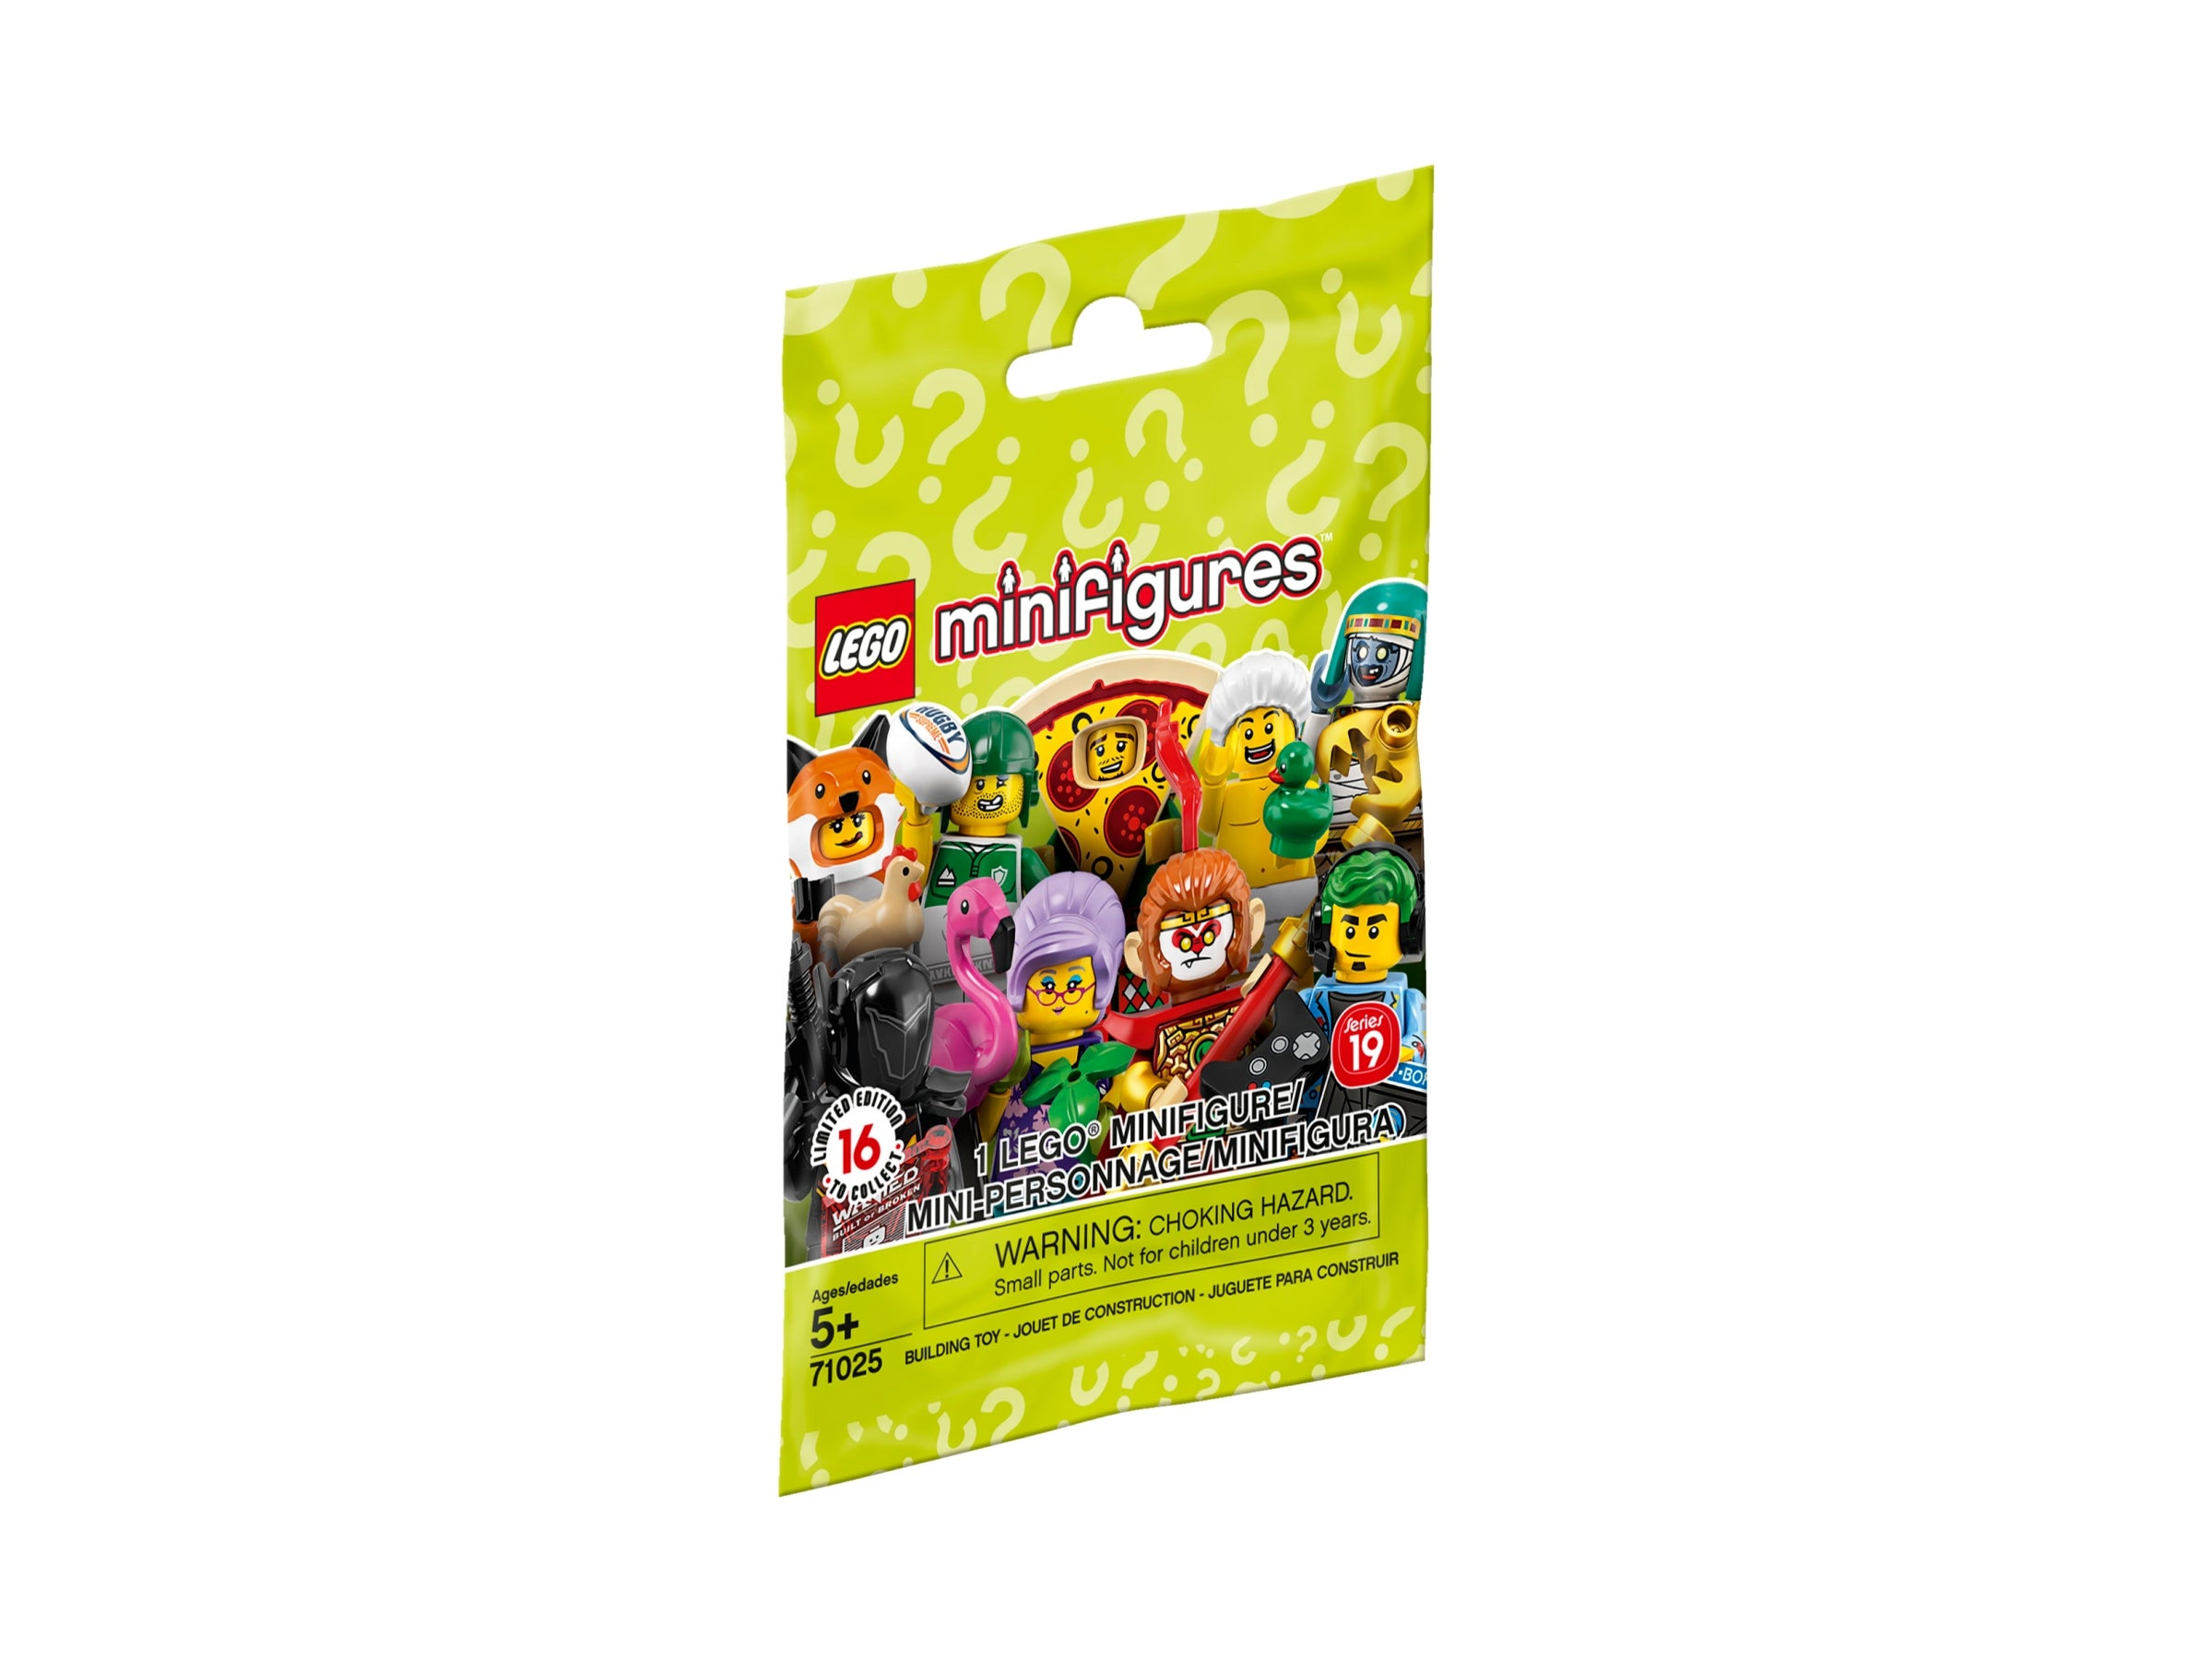 LEGO Minifigures Series 19 Choose Your Minifigure FREE SHIPPING!